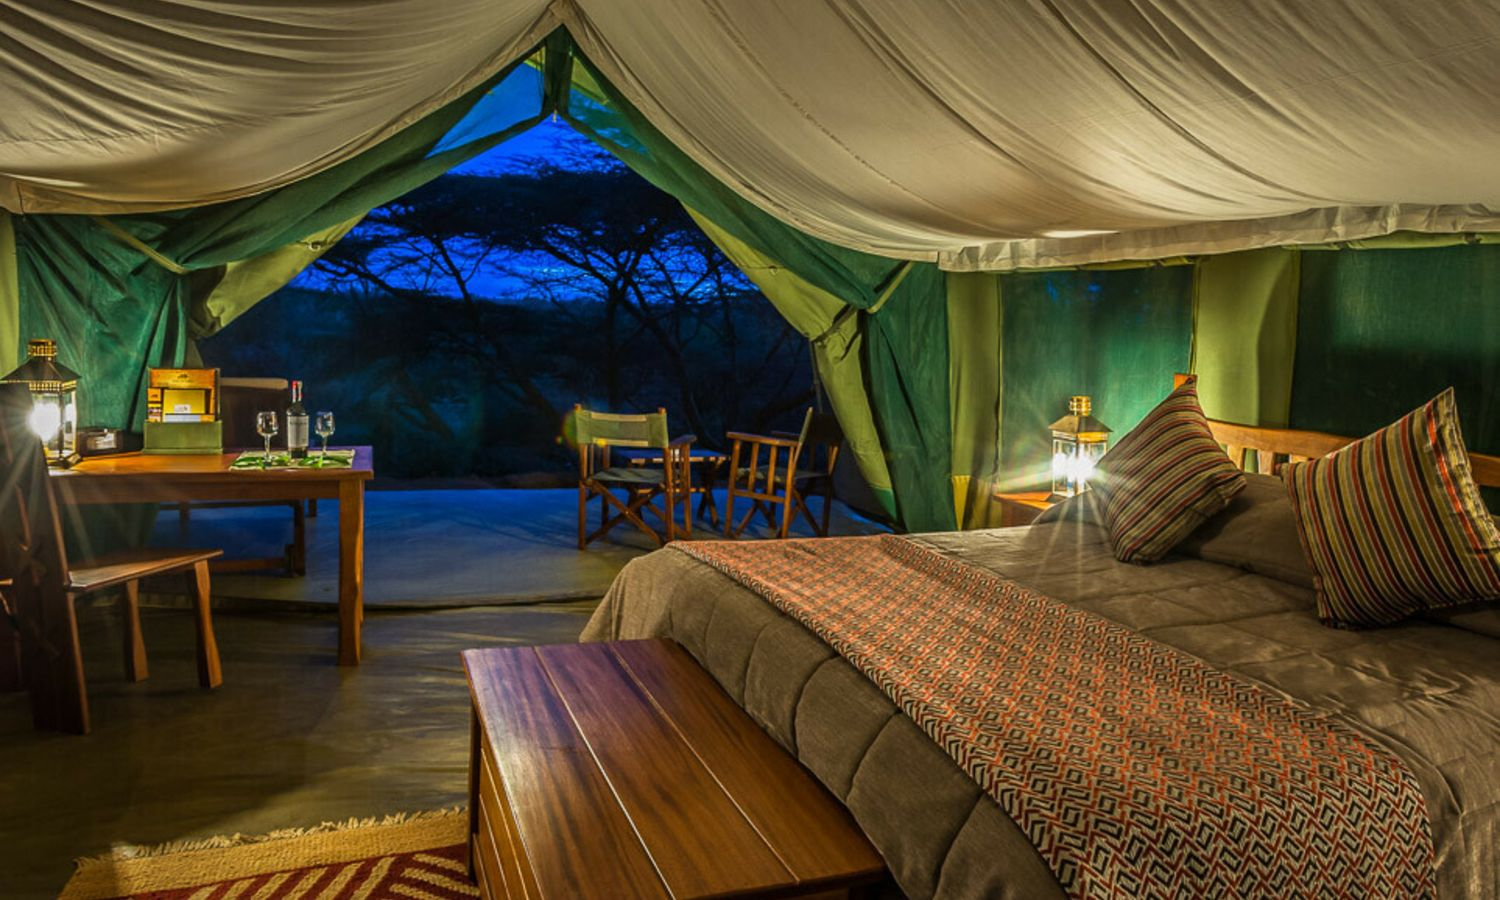 BEST OF KENIA - SAFARI IN DER KLEINGRUPPE